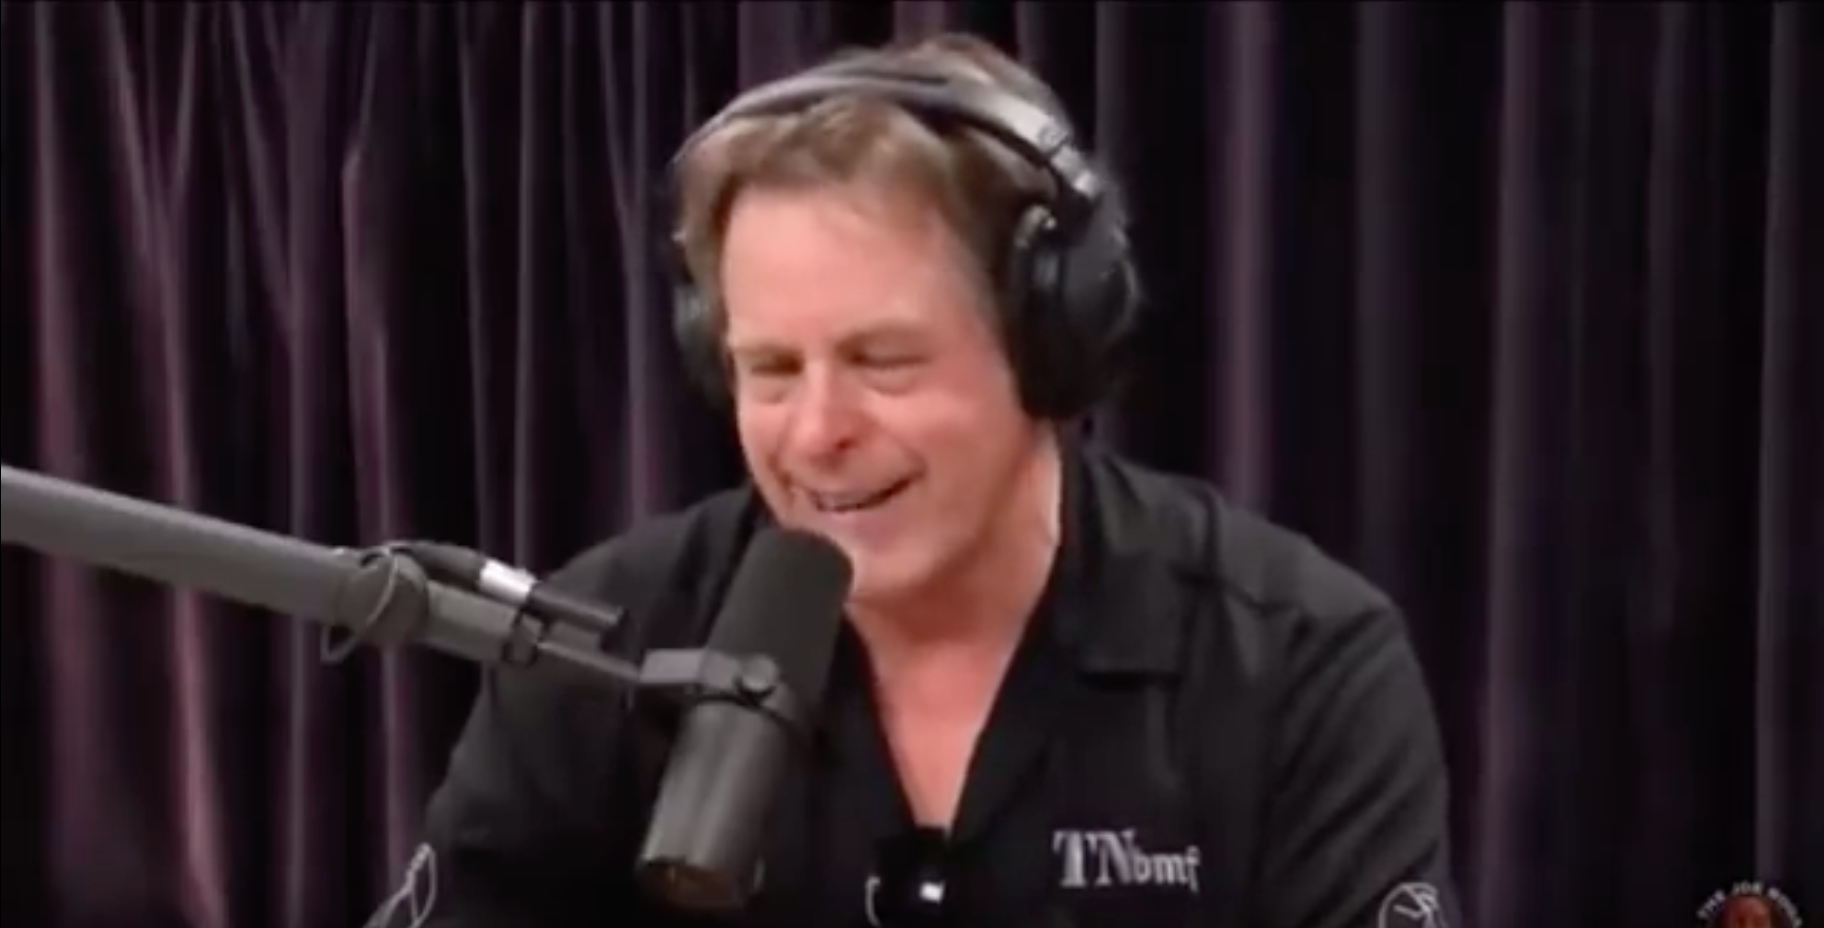 Ted Nugent DESTROYS Vegans In Rant